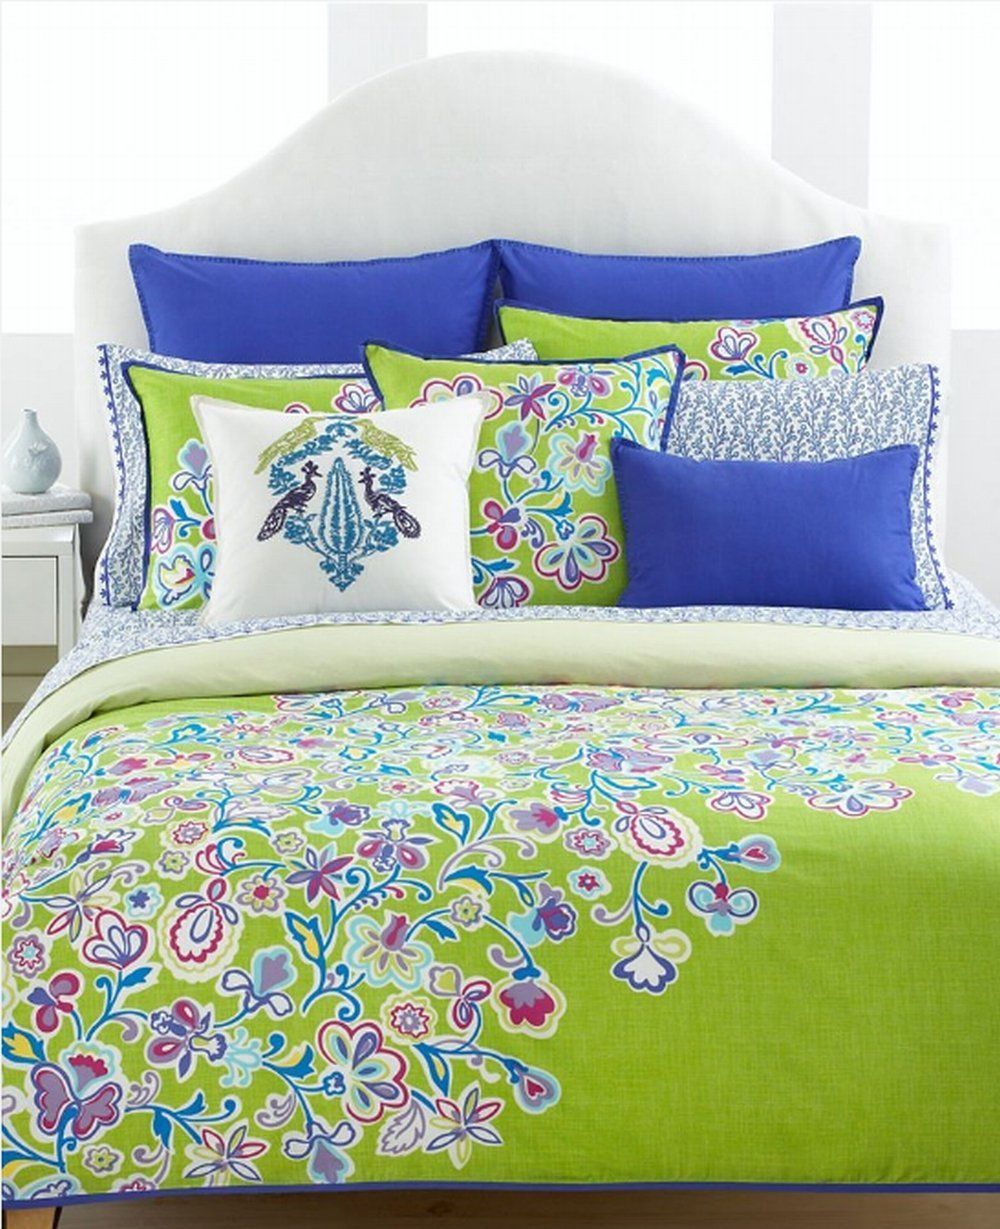 Blue and green bedding for teens - Bedspread